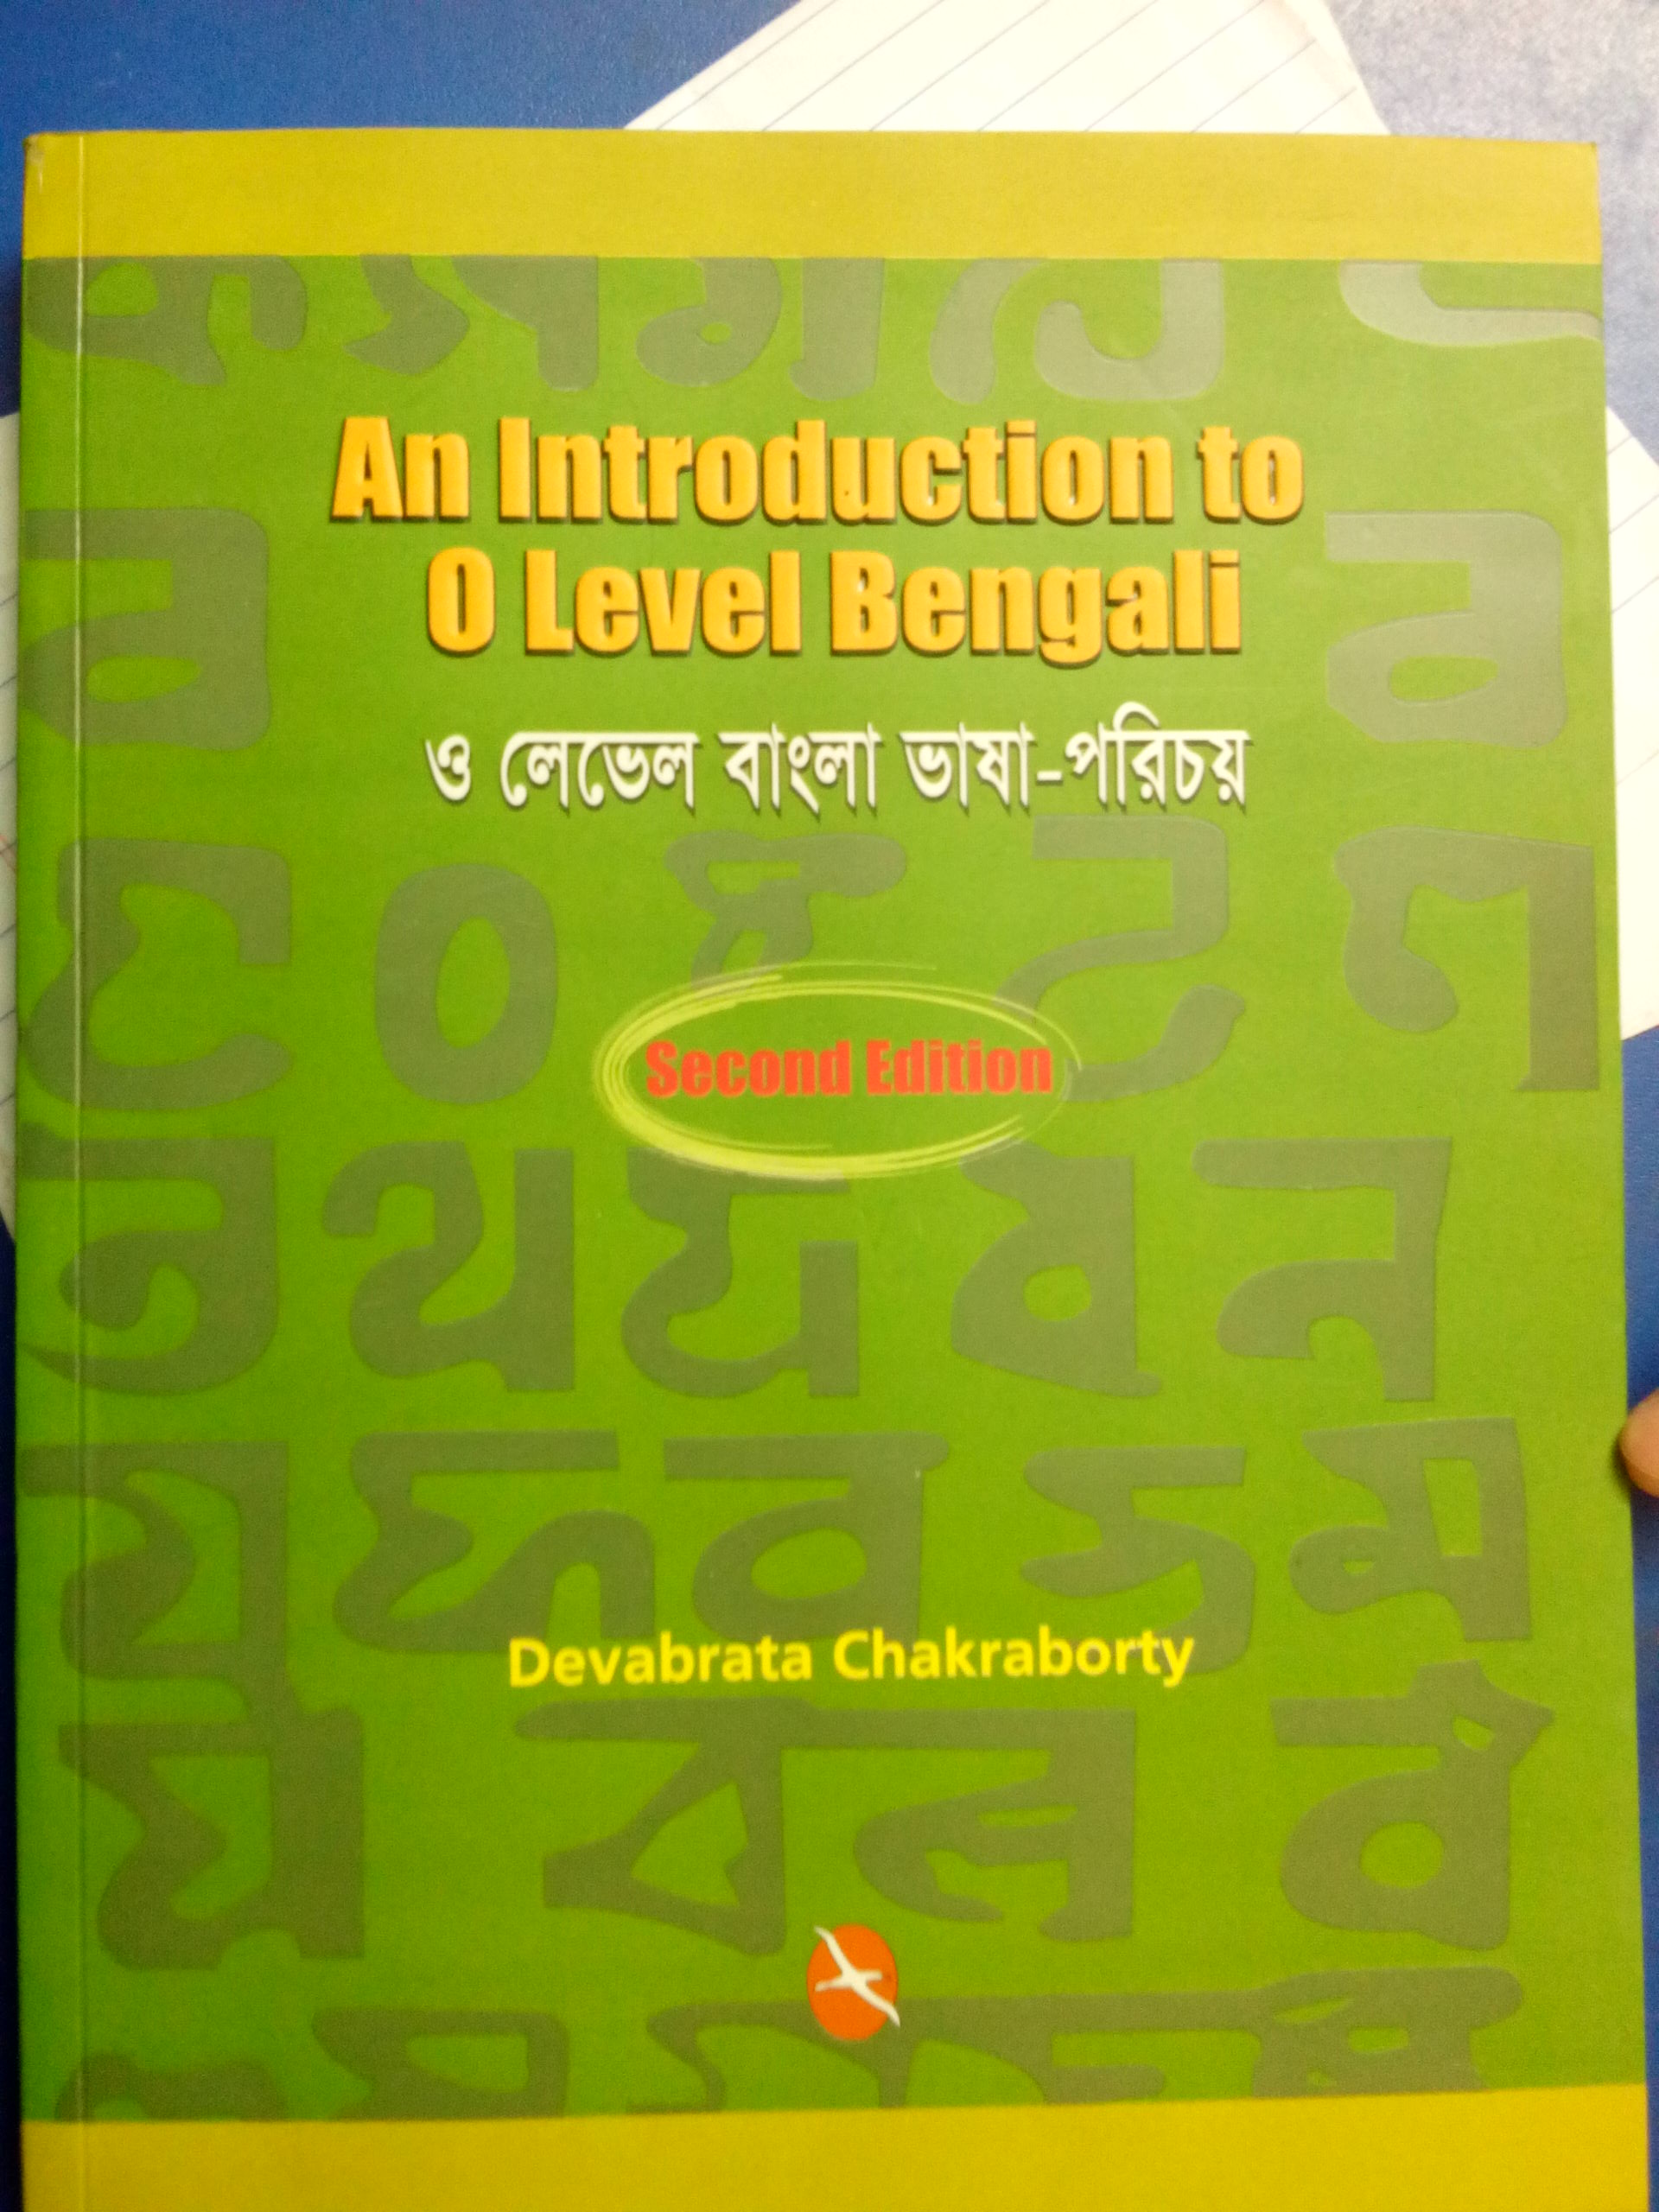 O Level English and Bangla Language Books